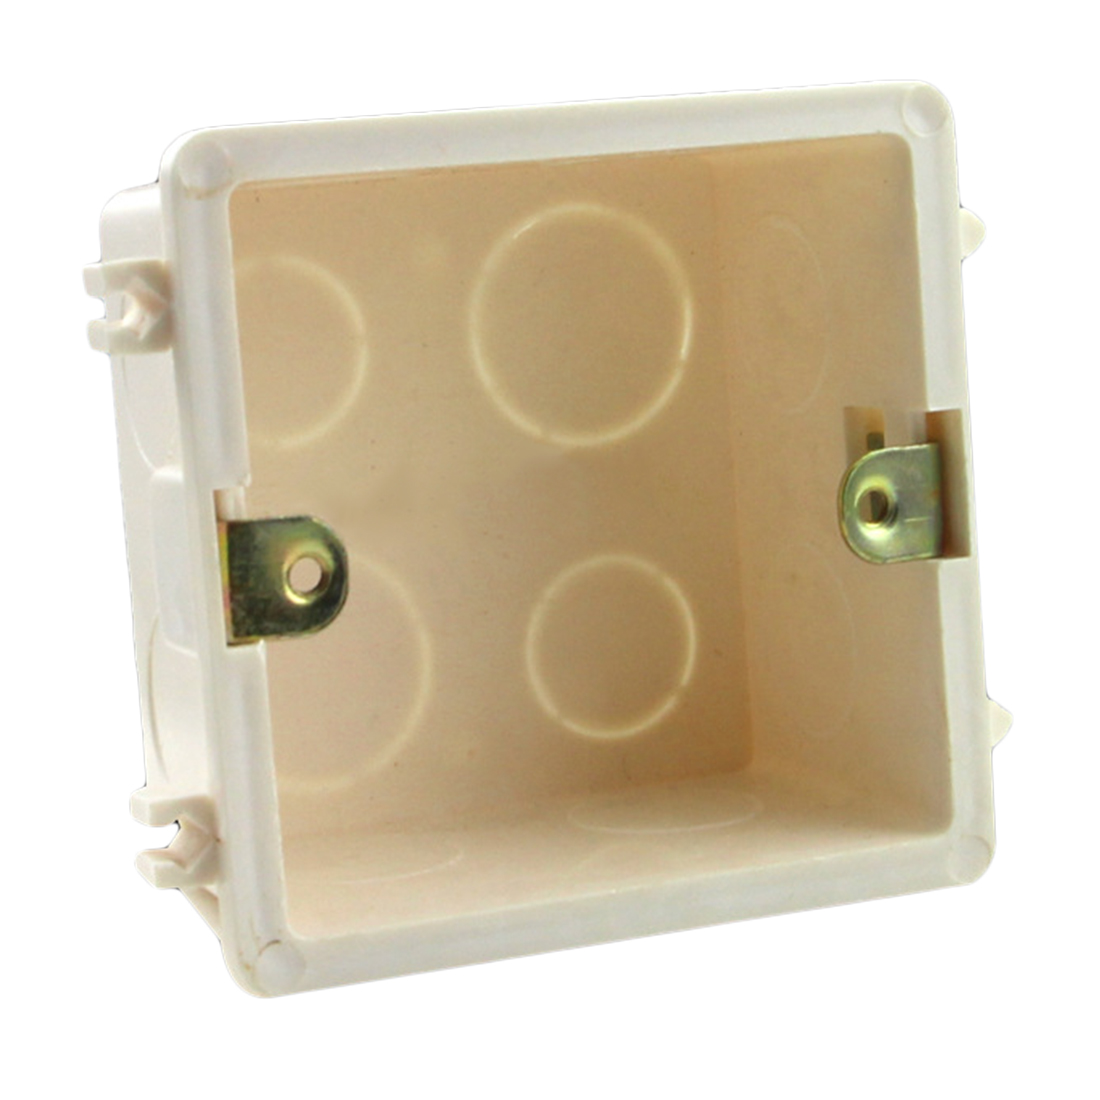 86 Cassette Universal White Wall Mounting Box For Wall